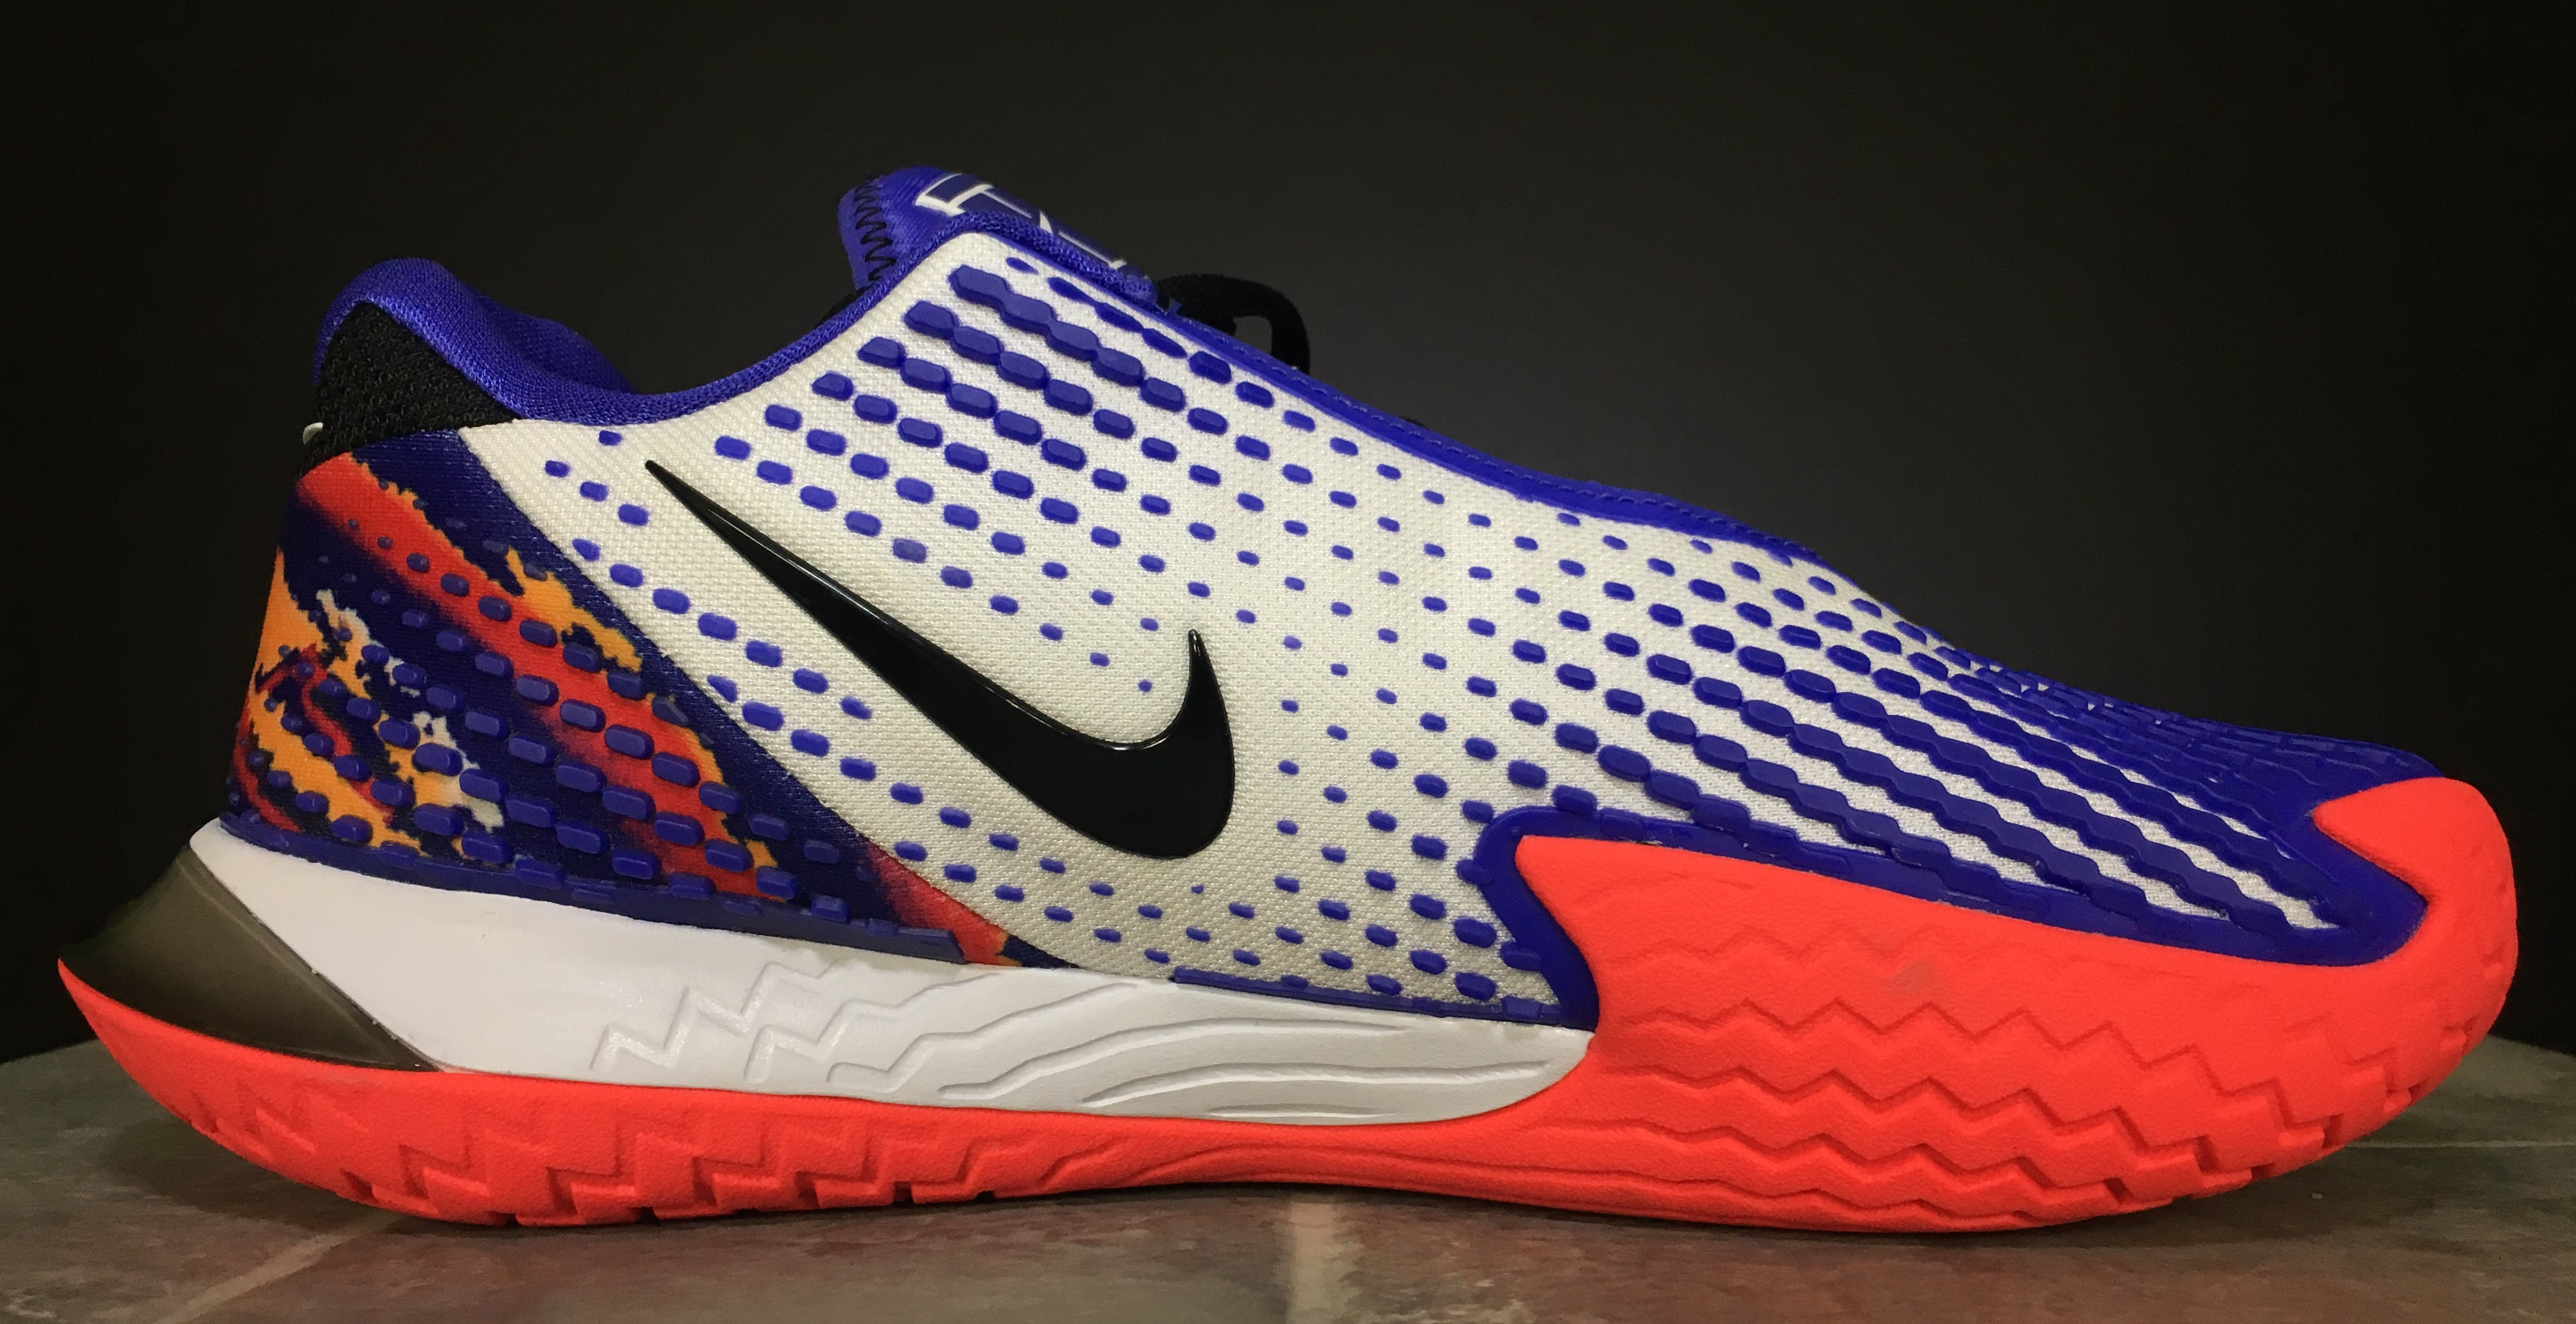 Nike Launches the Air Zoom Vapor Cage 4 | TENNIS EXPRESS BLOG